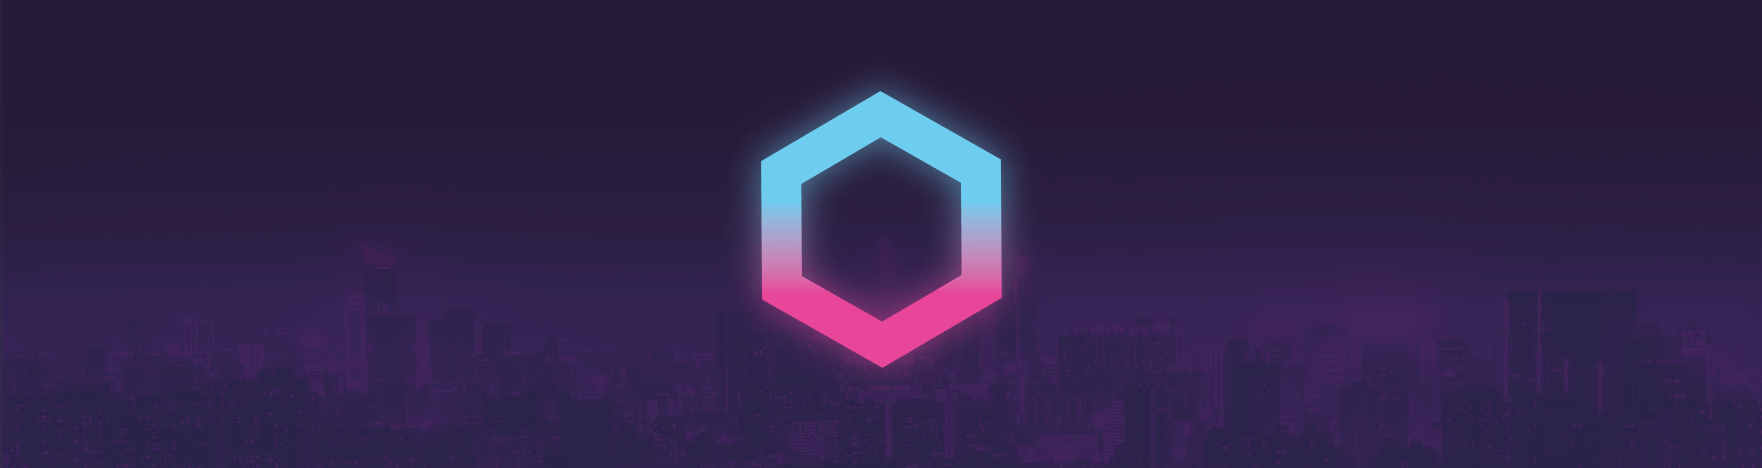 The Synthwave 84 logo banner